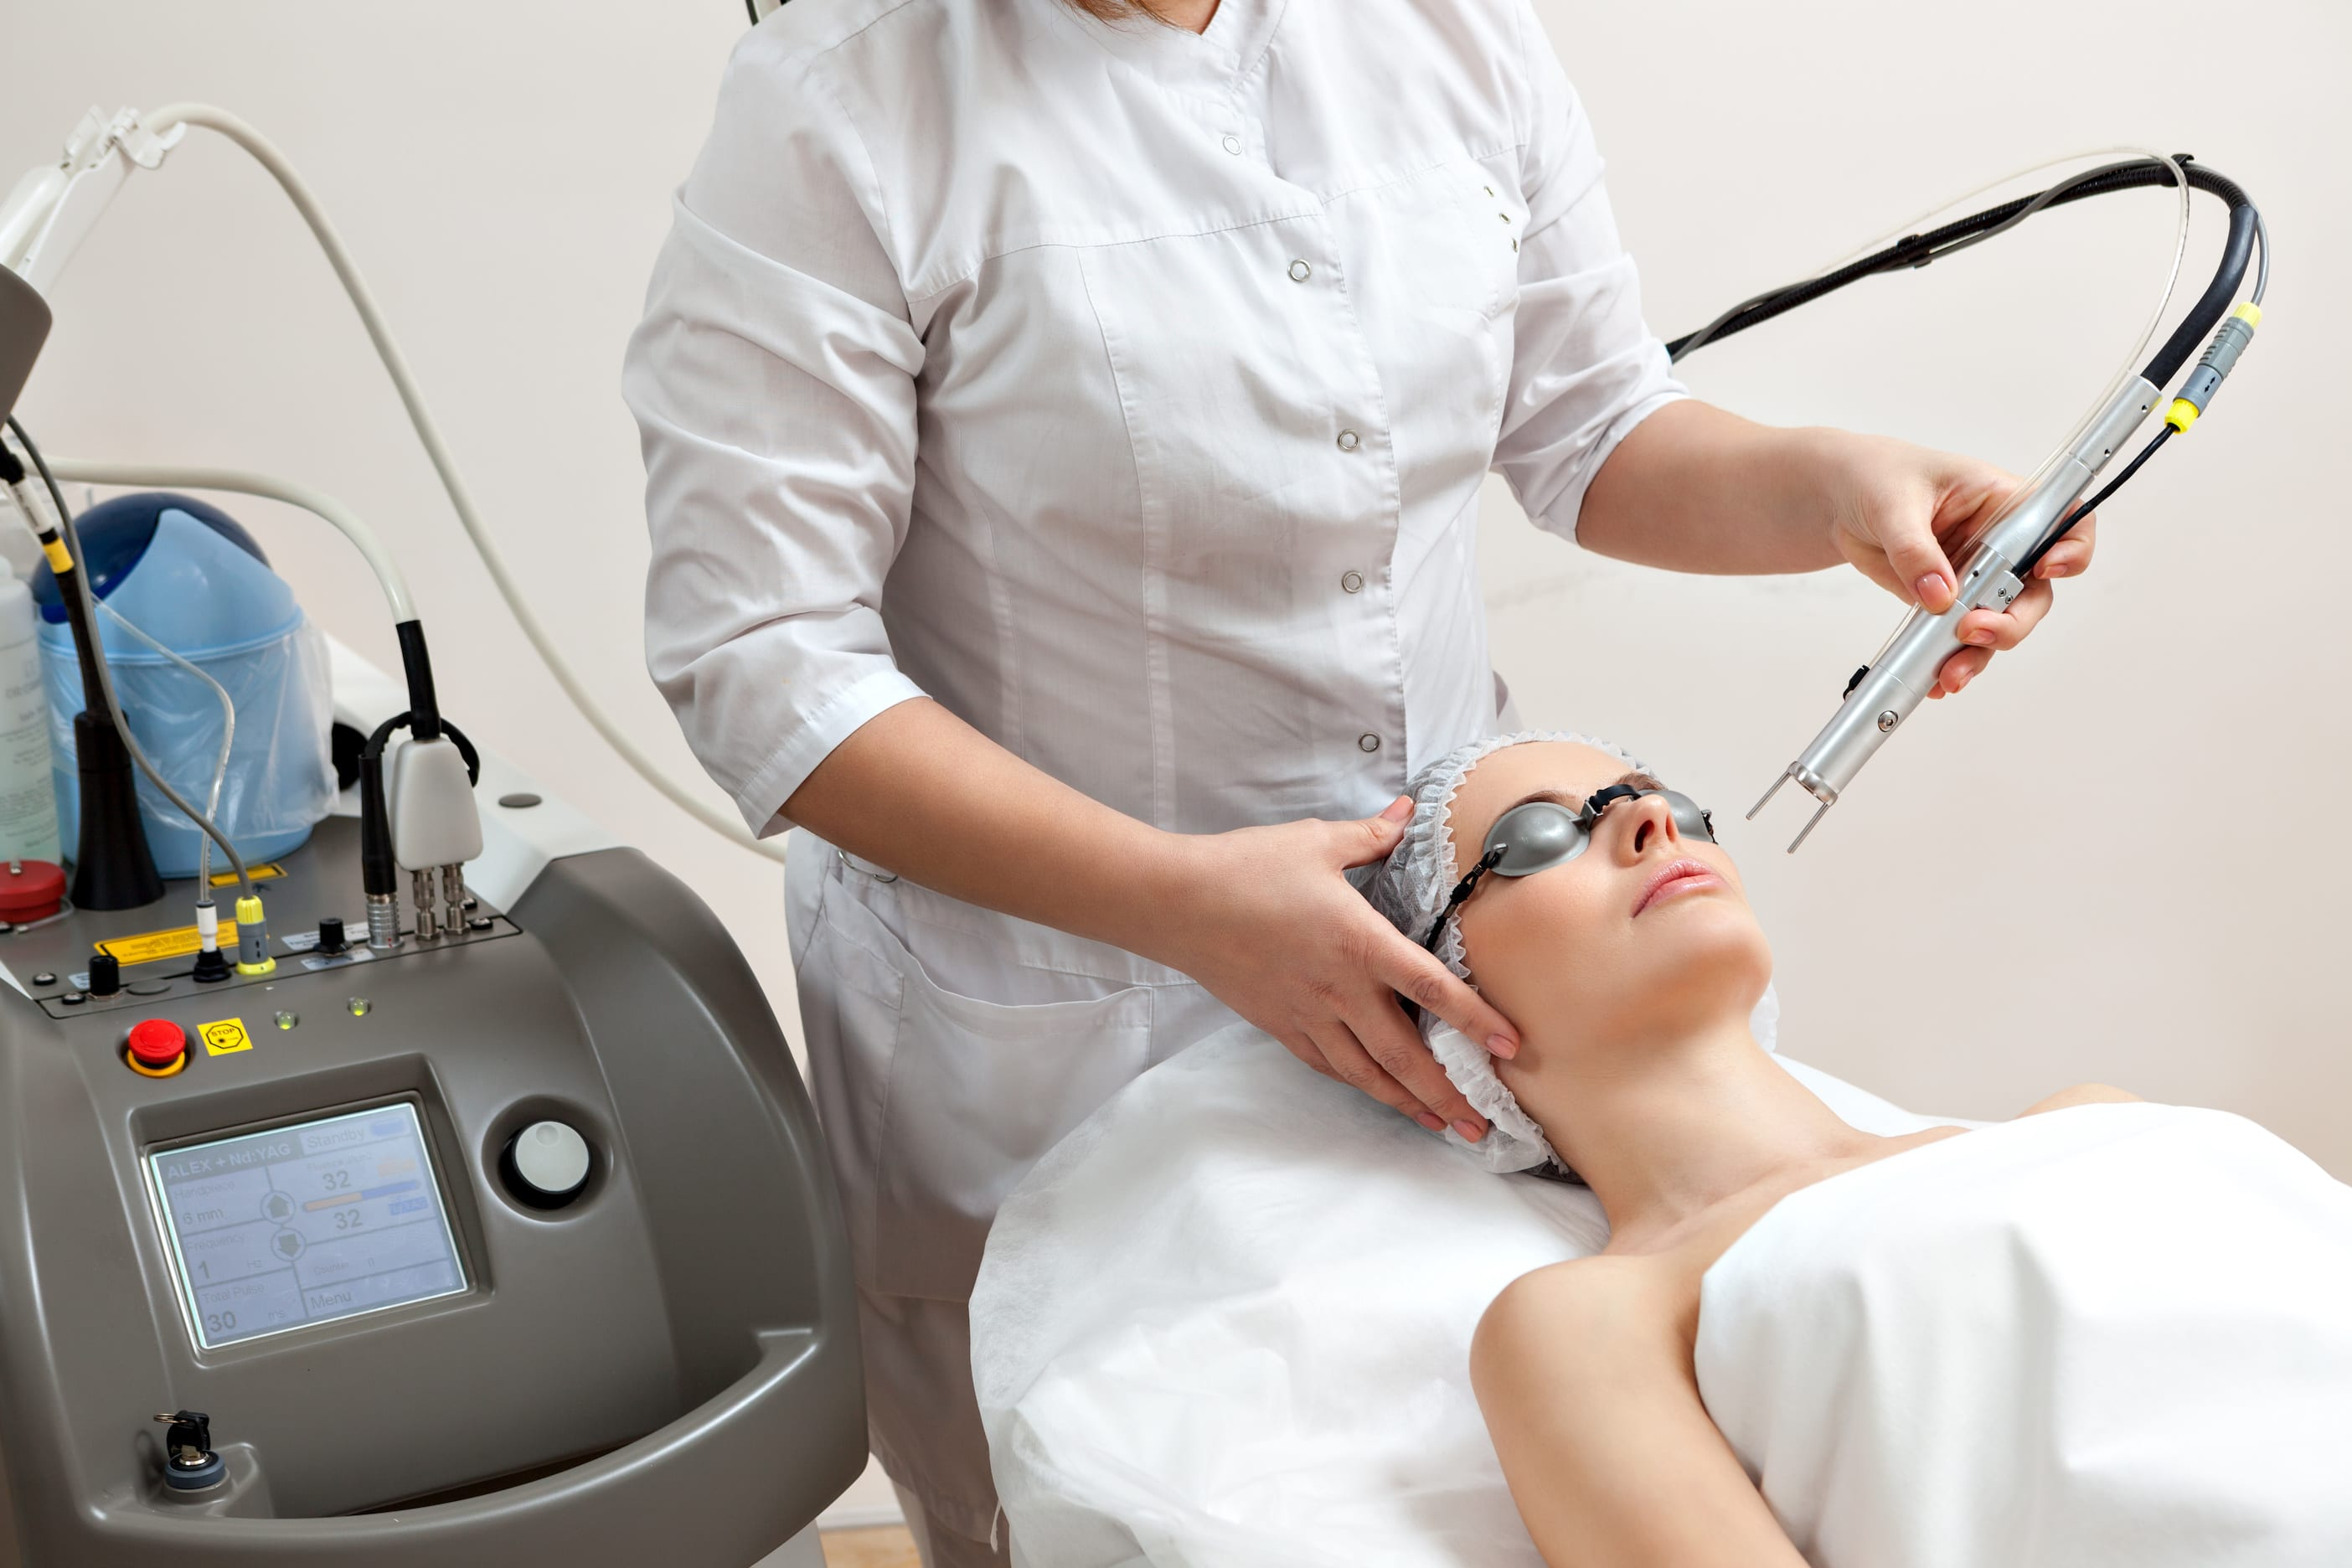 The Guide to Cosmetic Lasers and Laser Hair Skin Treatments